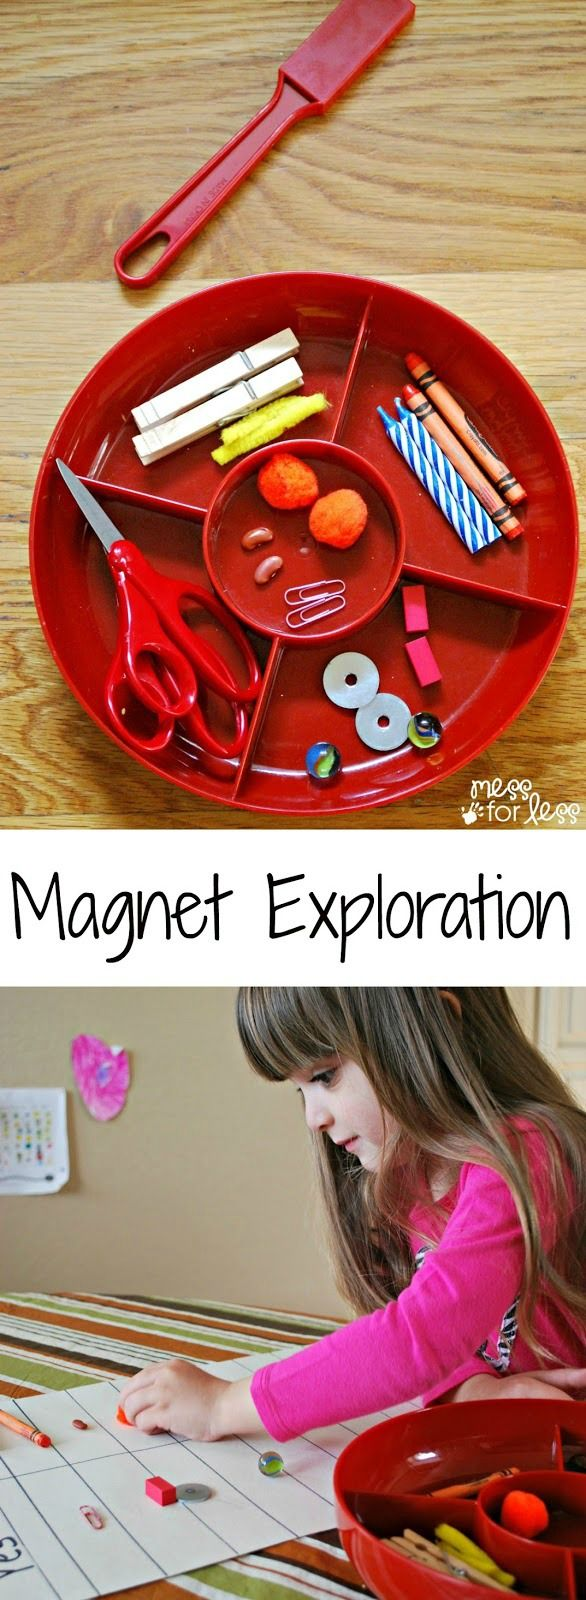 40 Fun Magnet Experiments and Play Ideas - Teach Beside Me